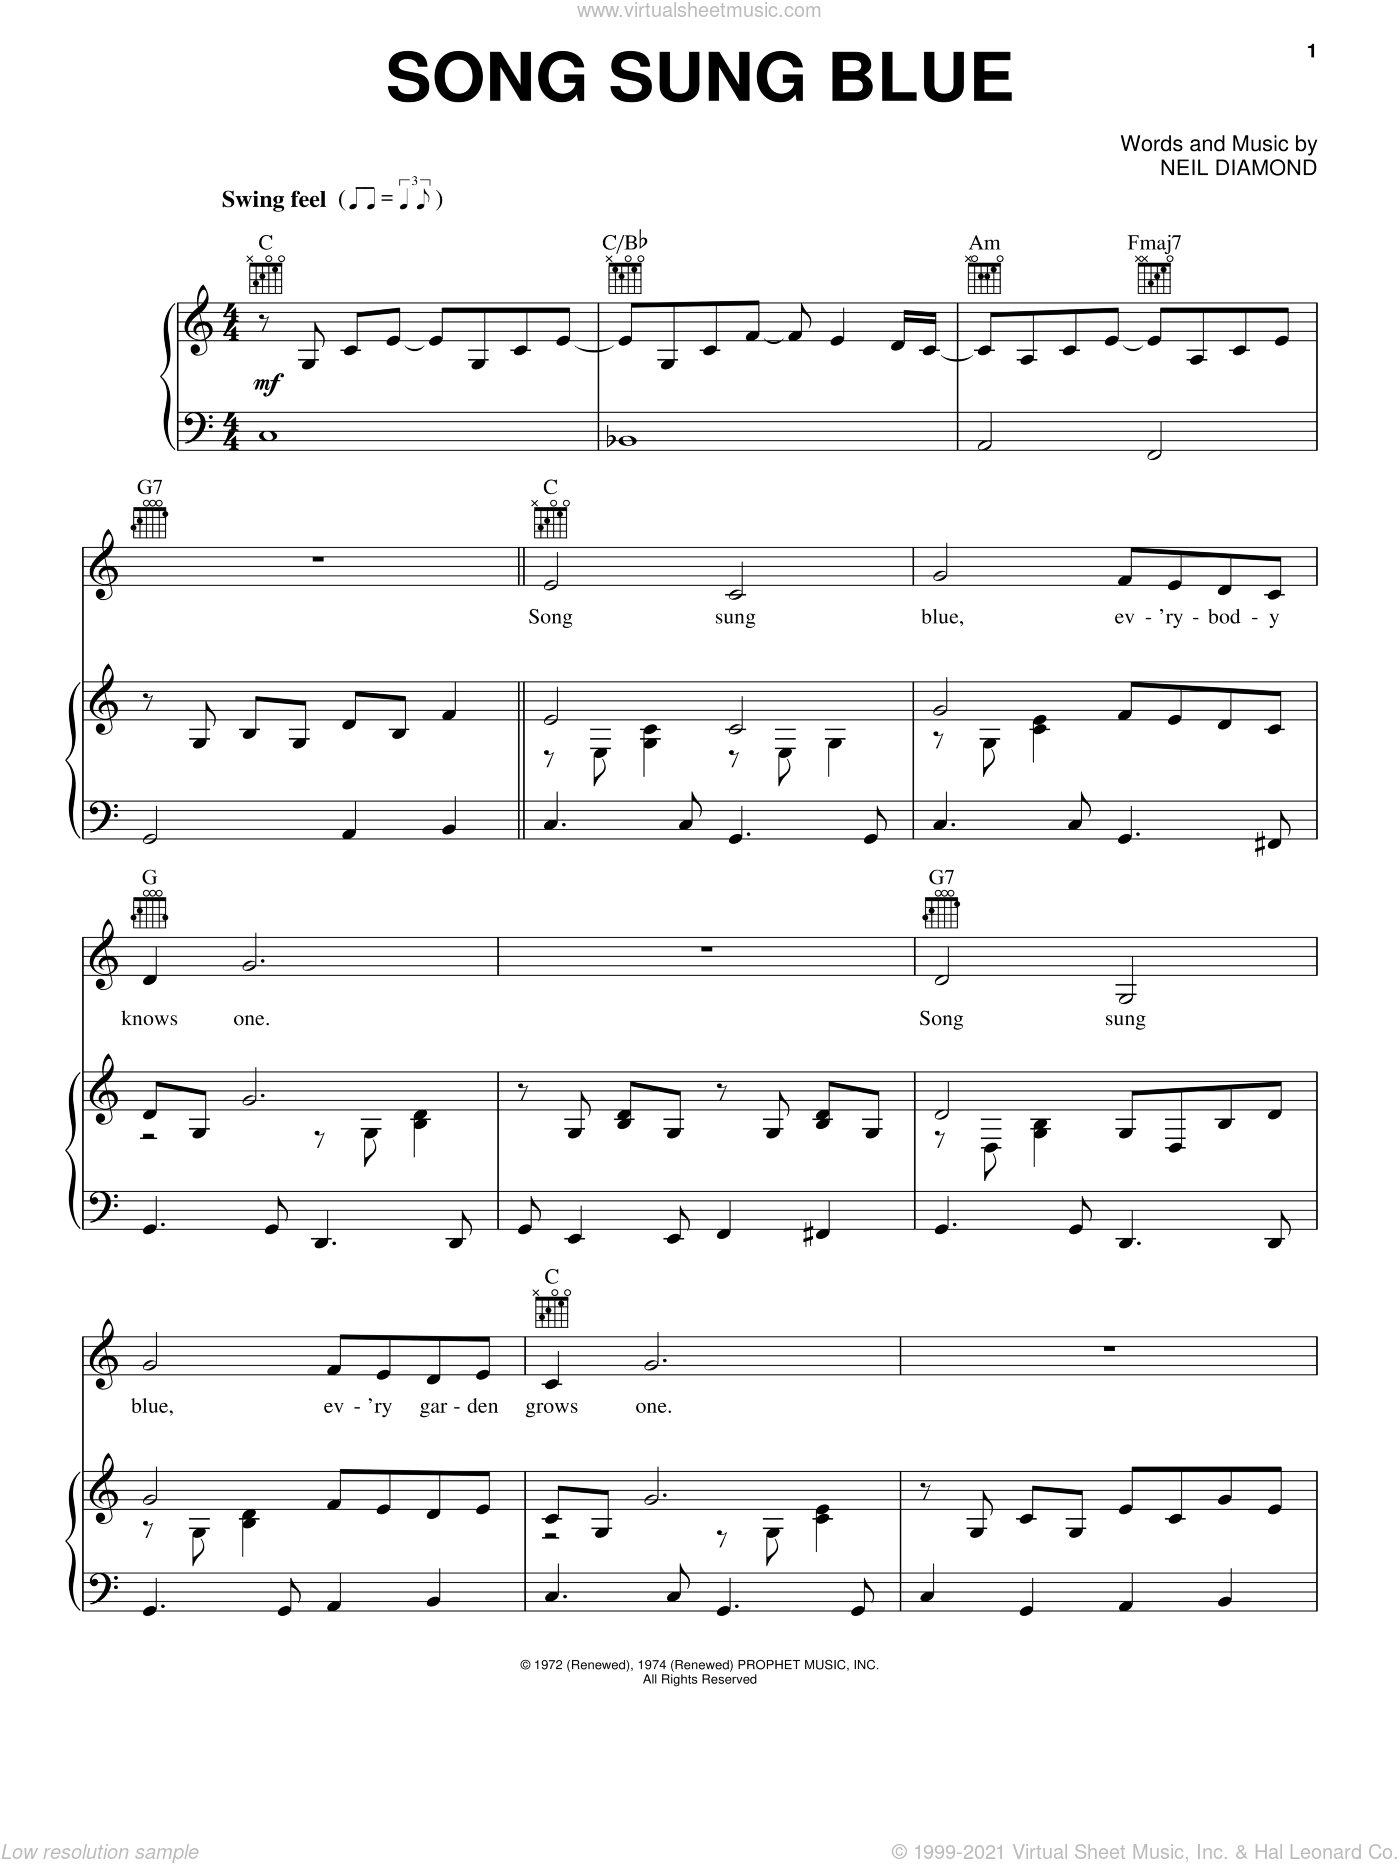 Song Sung Blue sheet music for voice, piano or guitar by Neil Diamond, intermediate skill level